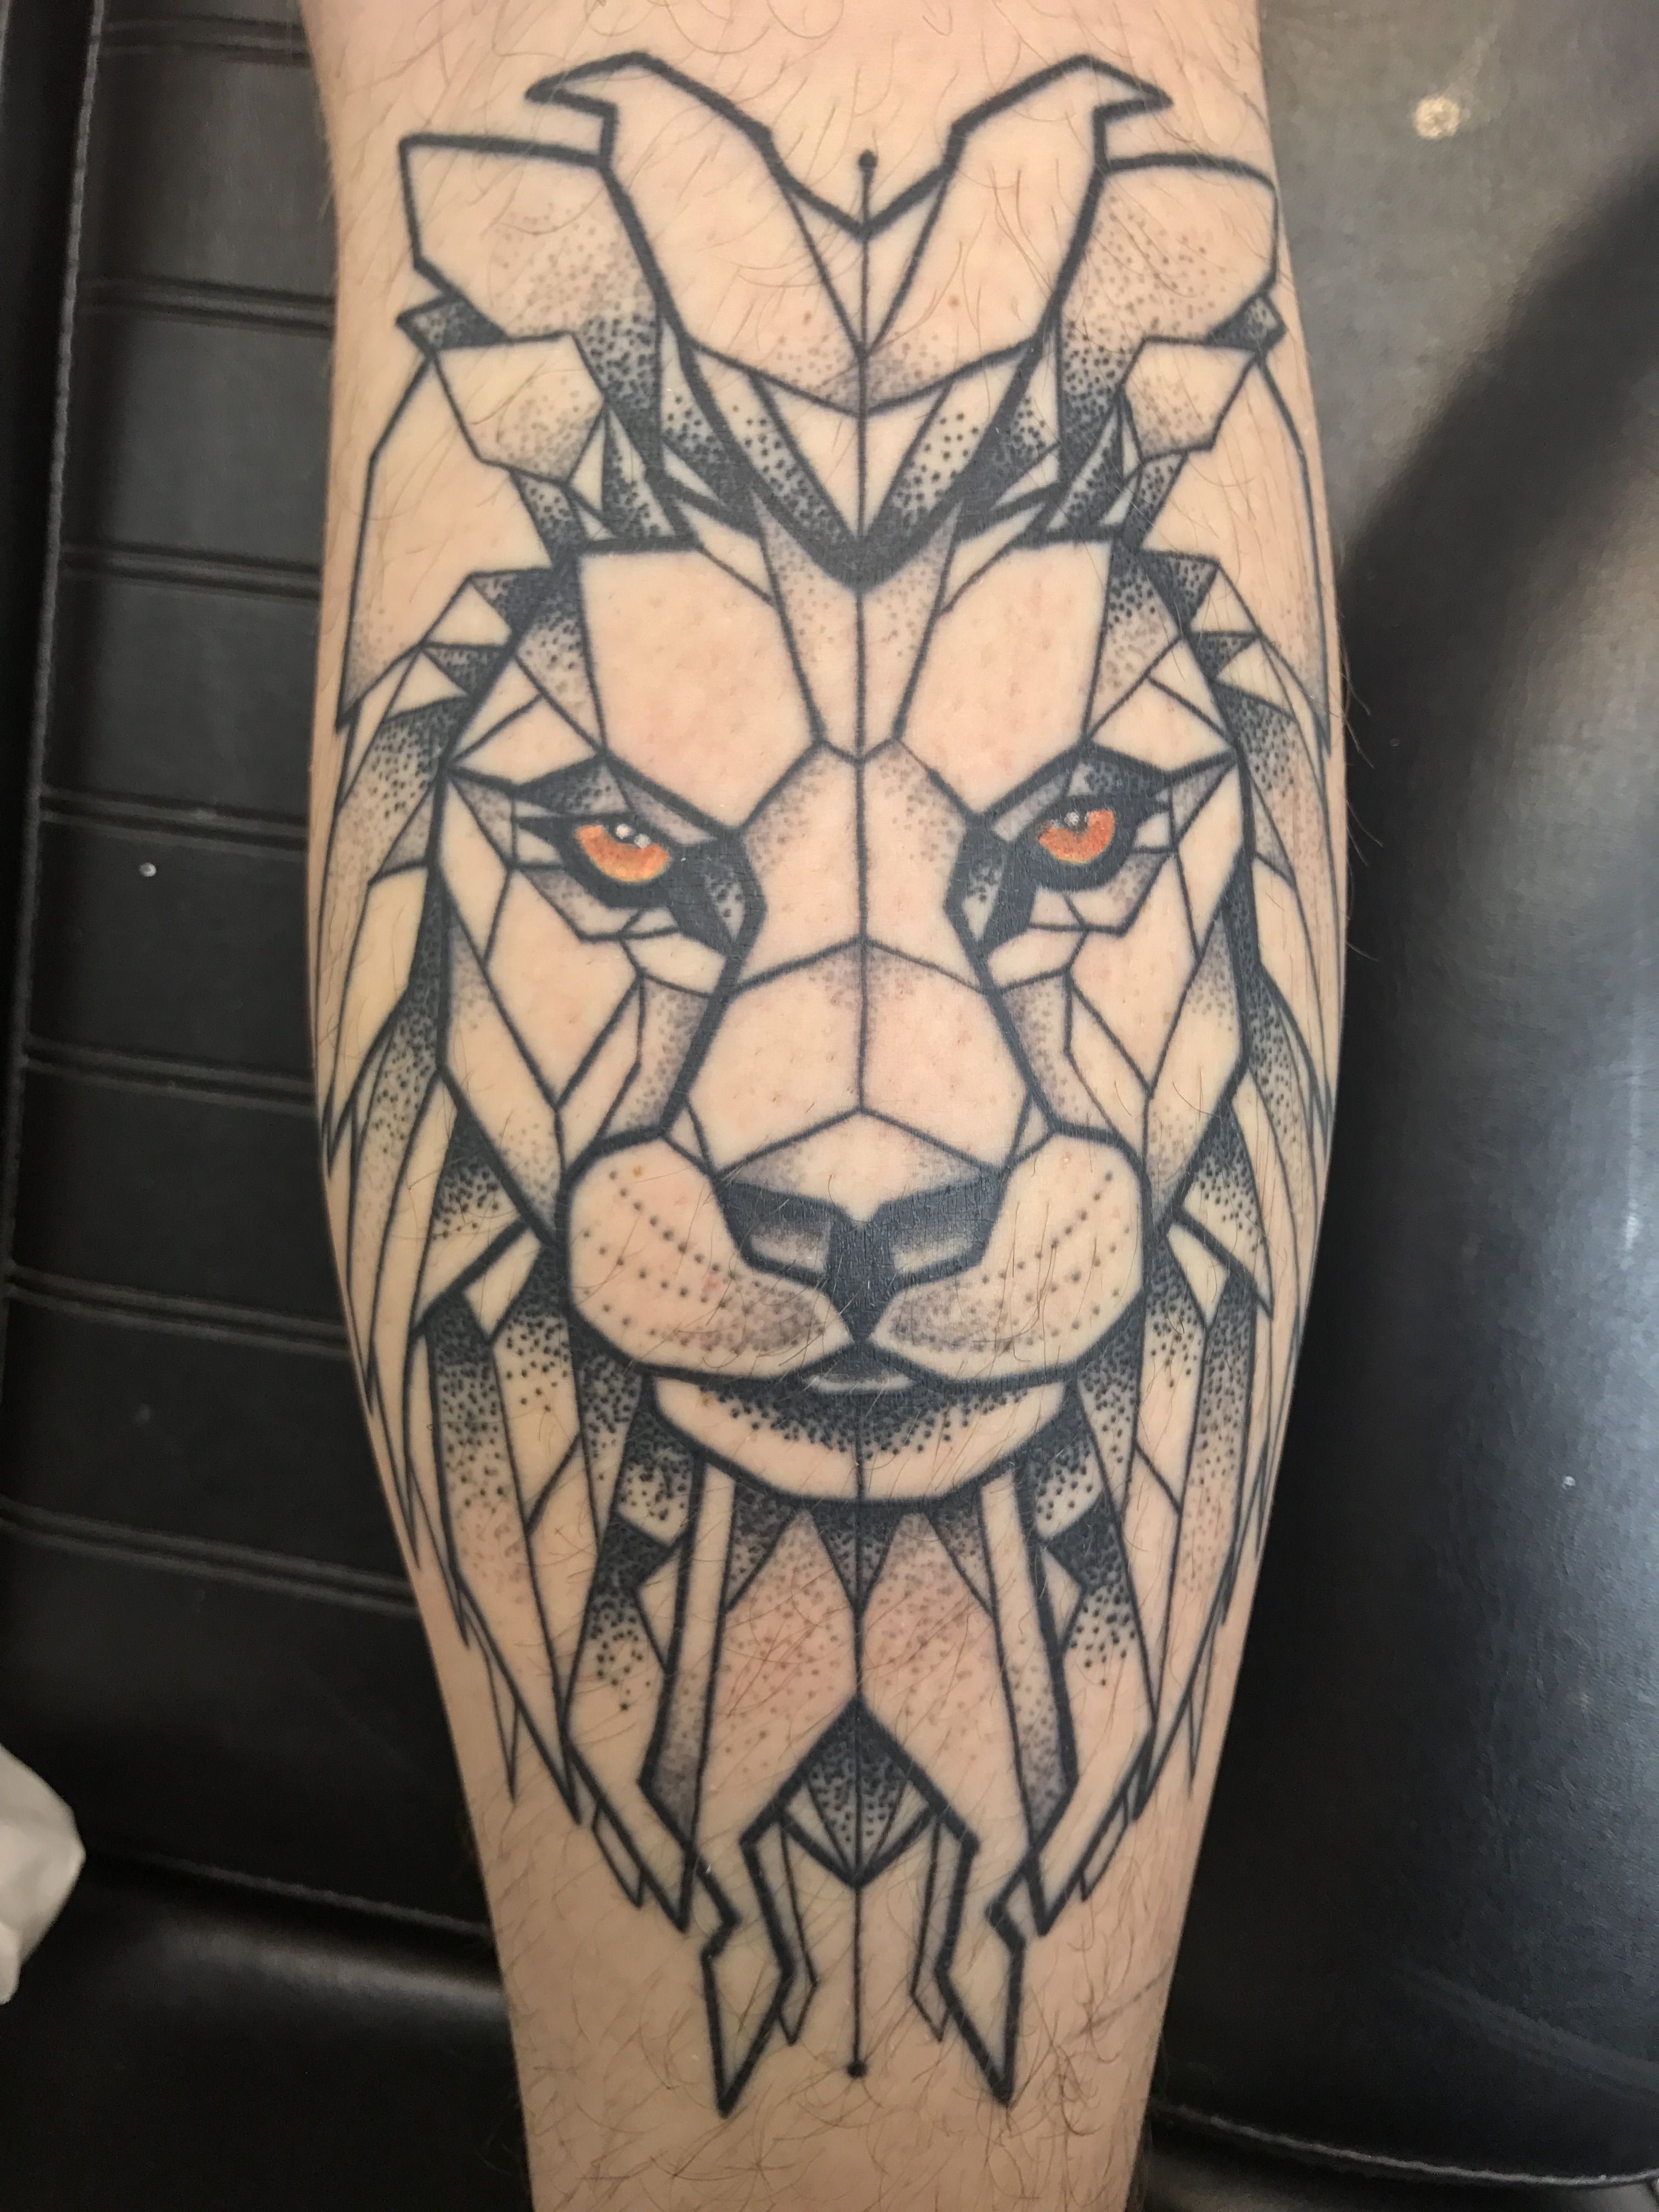 Geometric Lion Tattoo On My Calf Leg Leg Tattoo Men Leg Tattoos Tattoos For Guys